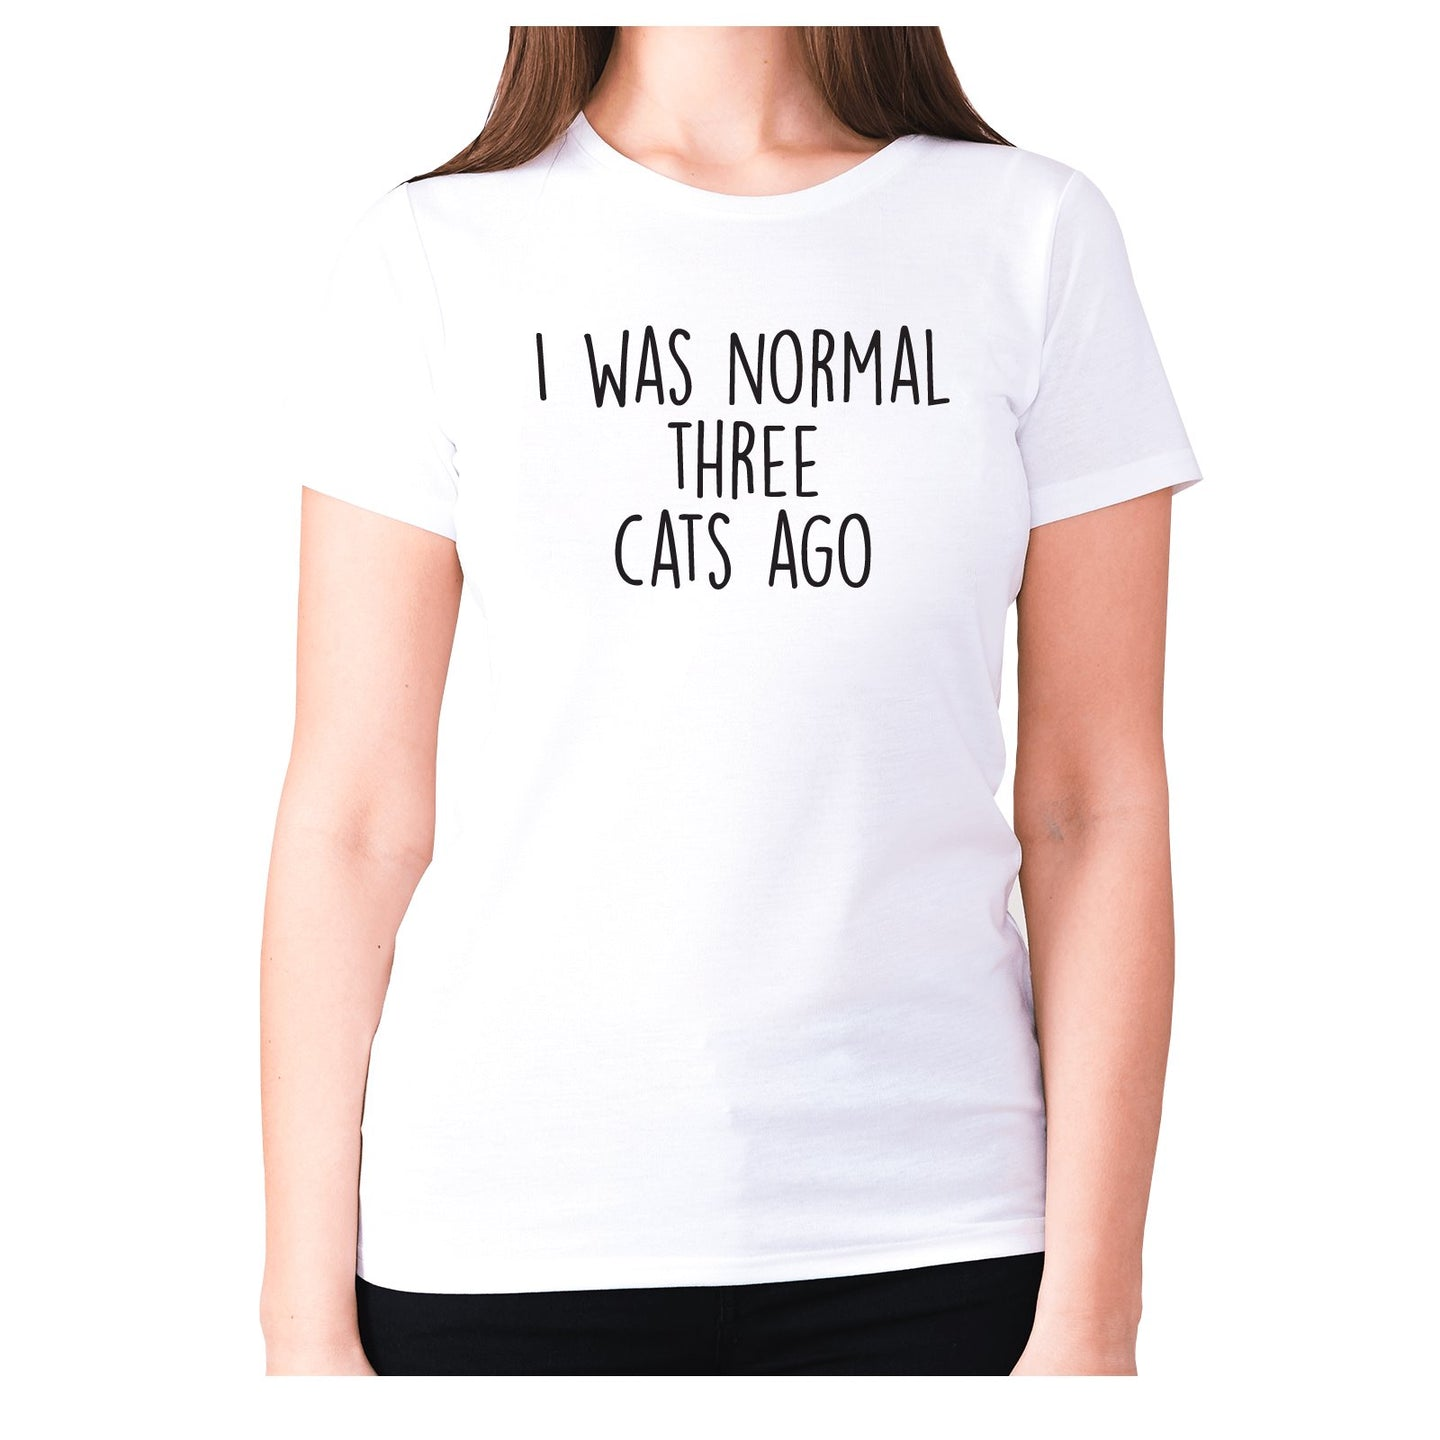 I was normal three cats ago - women's premium t-shirt - Graphic Gear